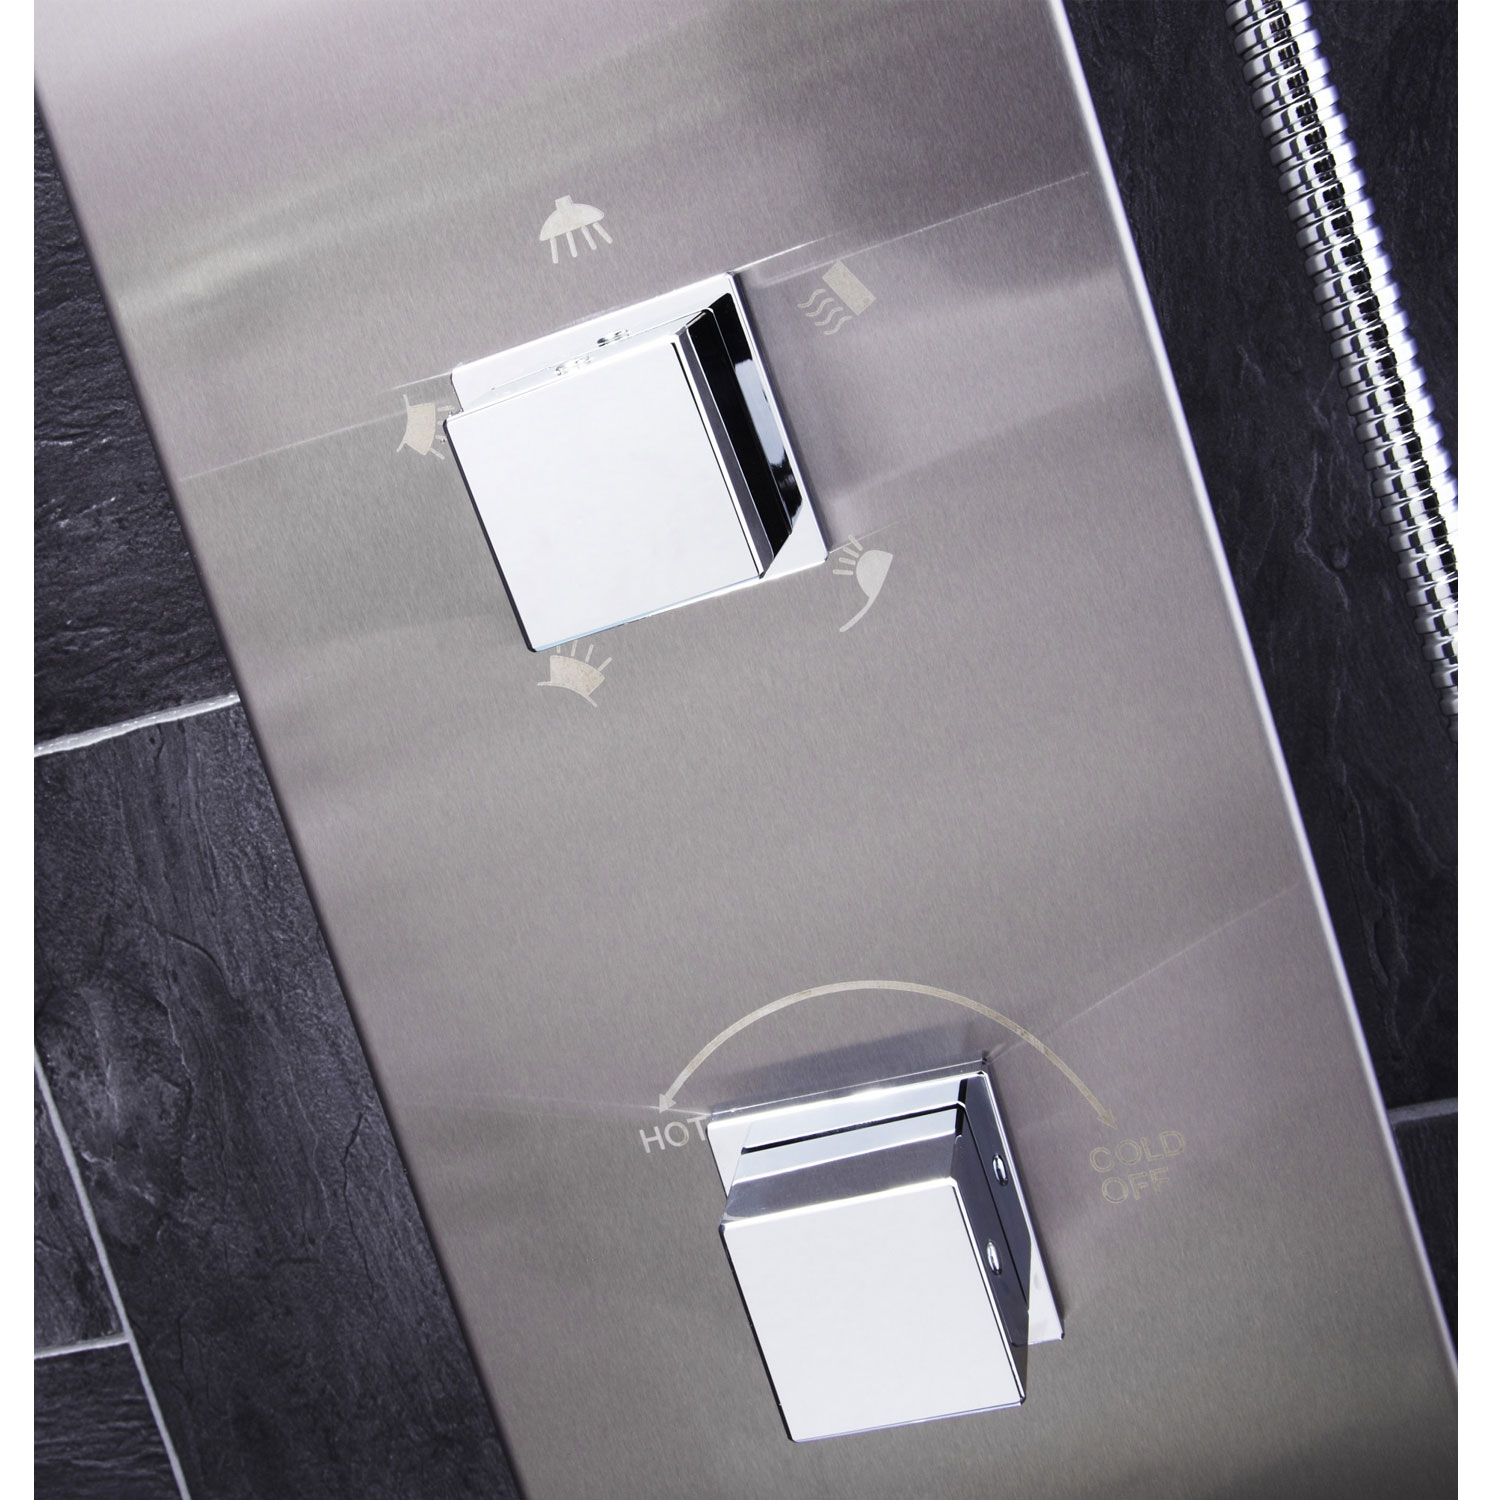 Verona Modo Thermostatic Shower Panel 2 Built-in Body Jets with Shower Hand-4